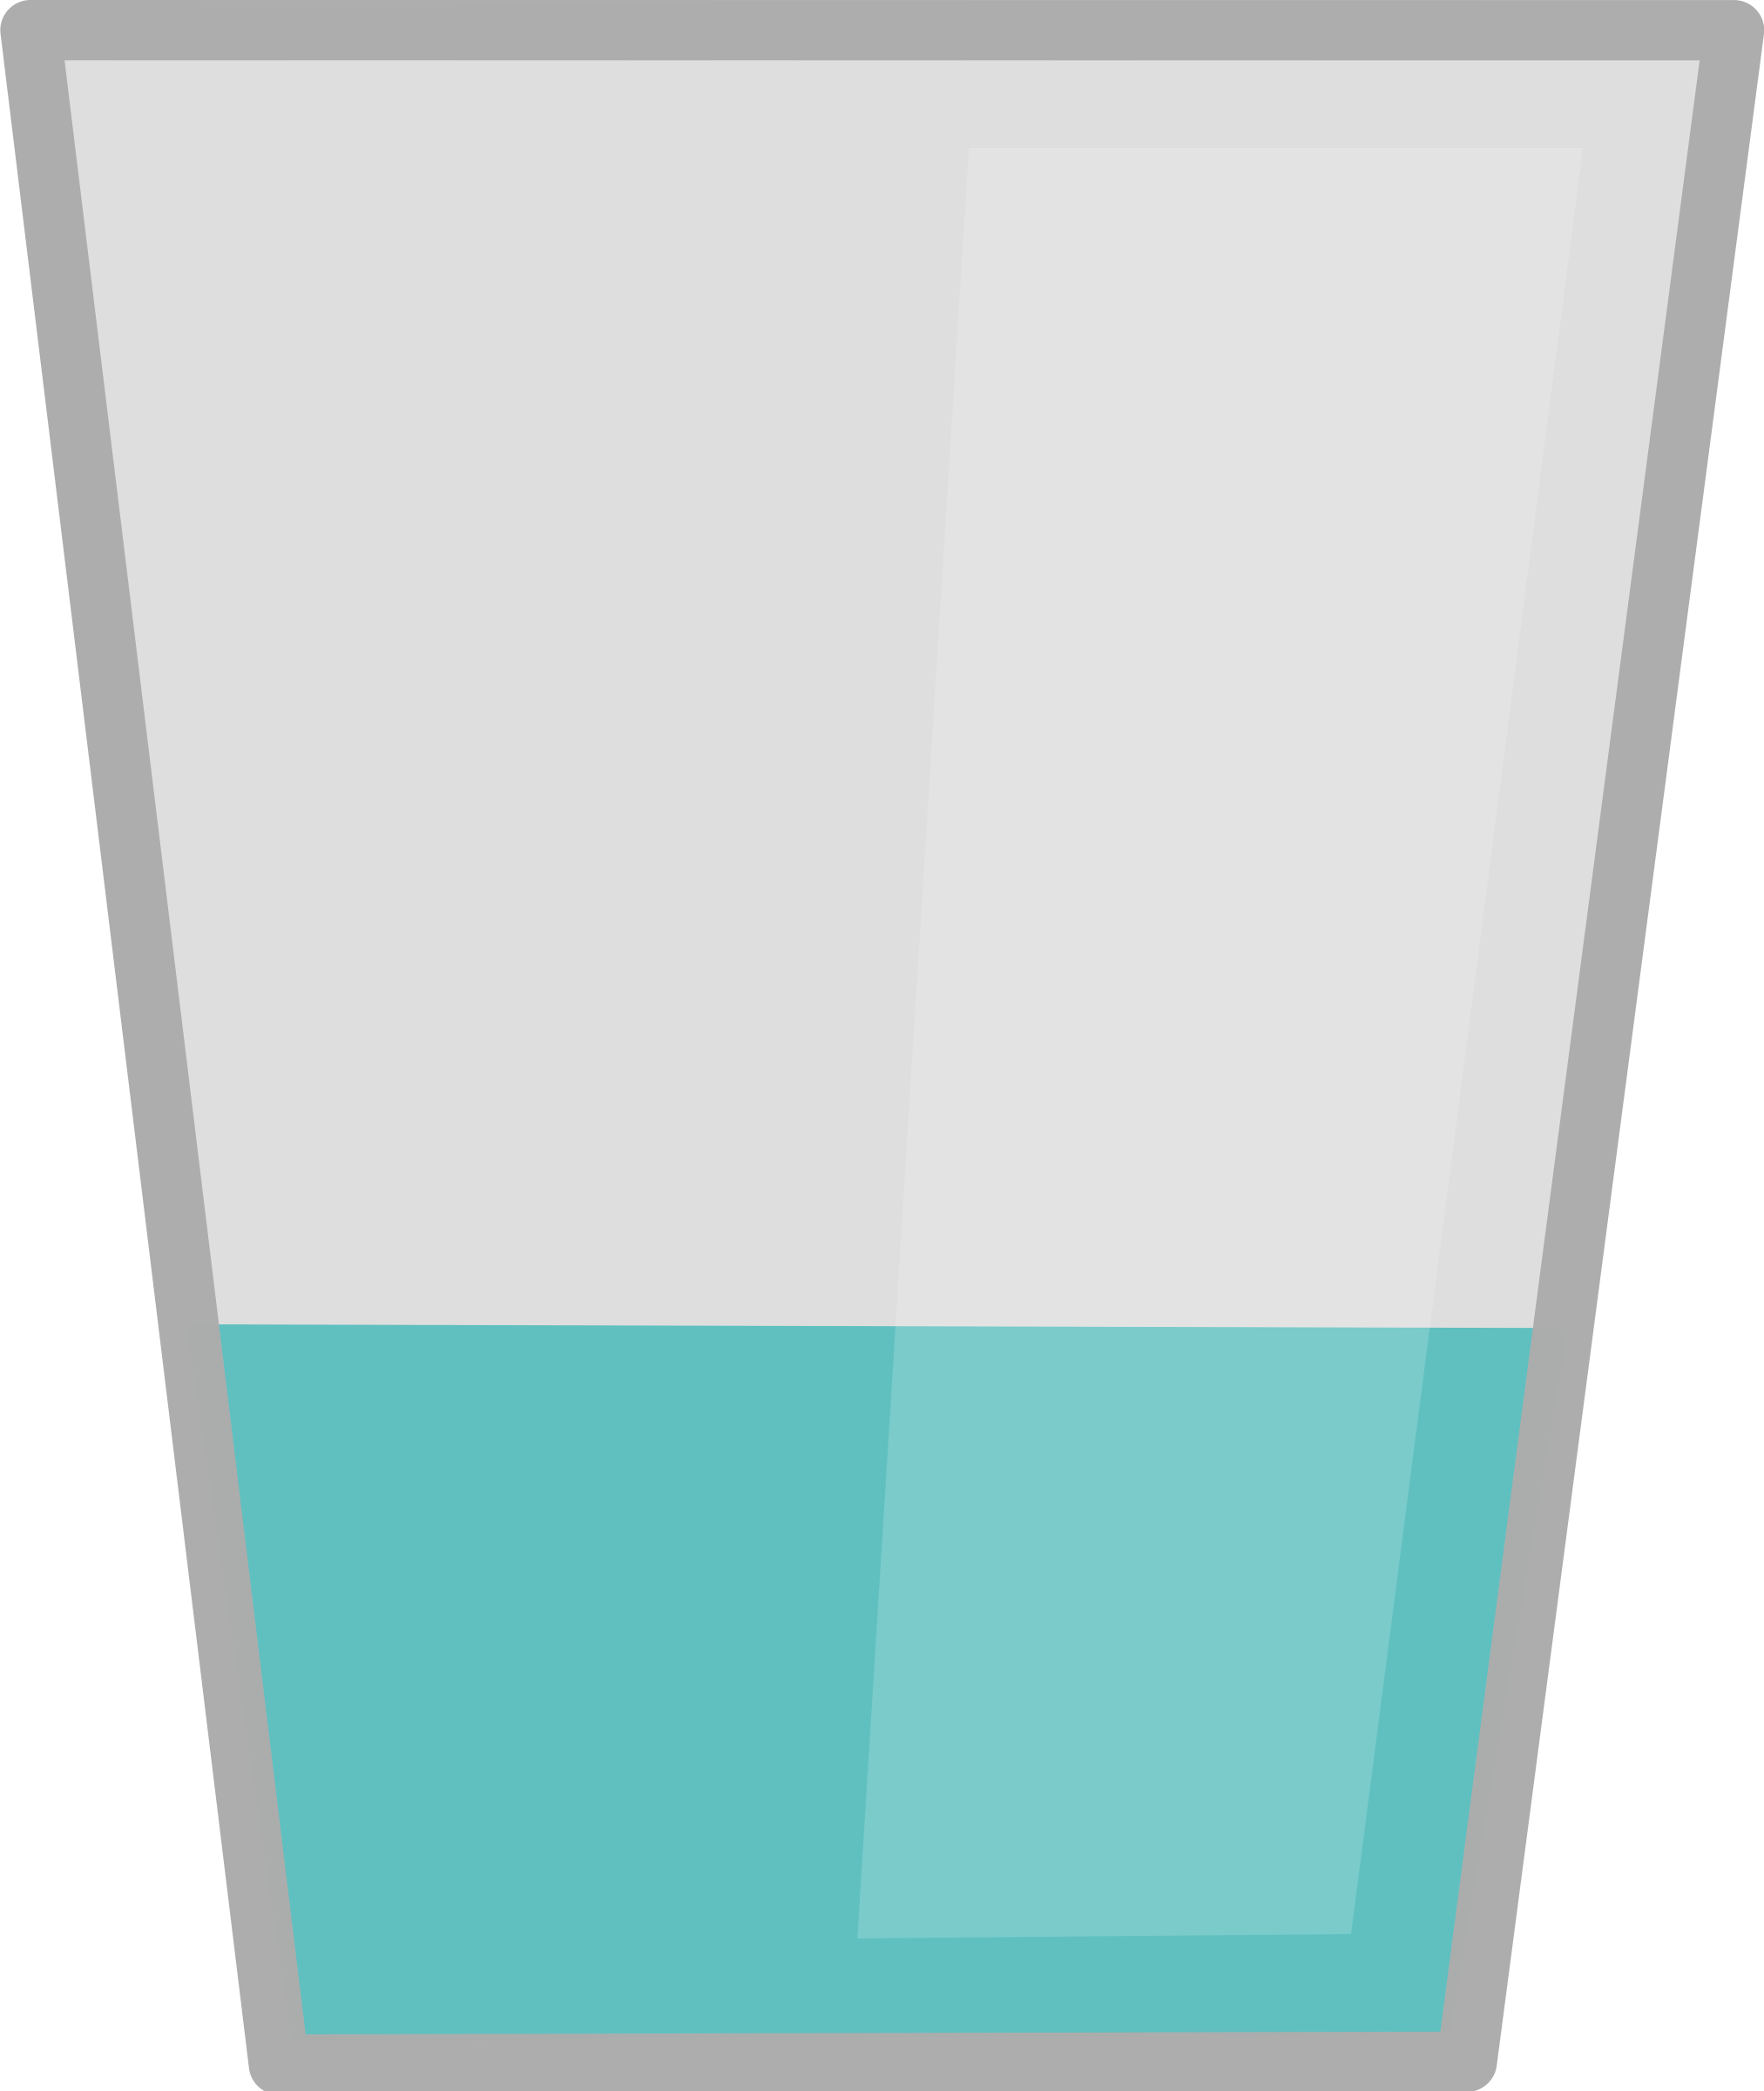 Glass of water with transparent background by kmsmith